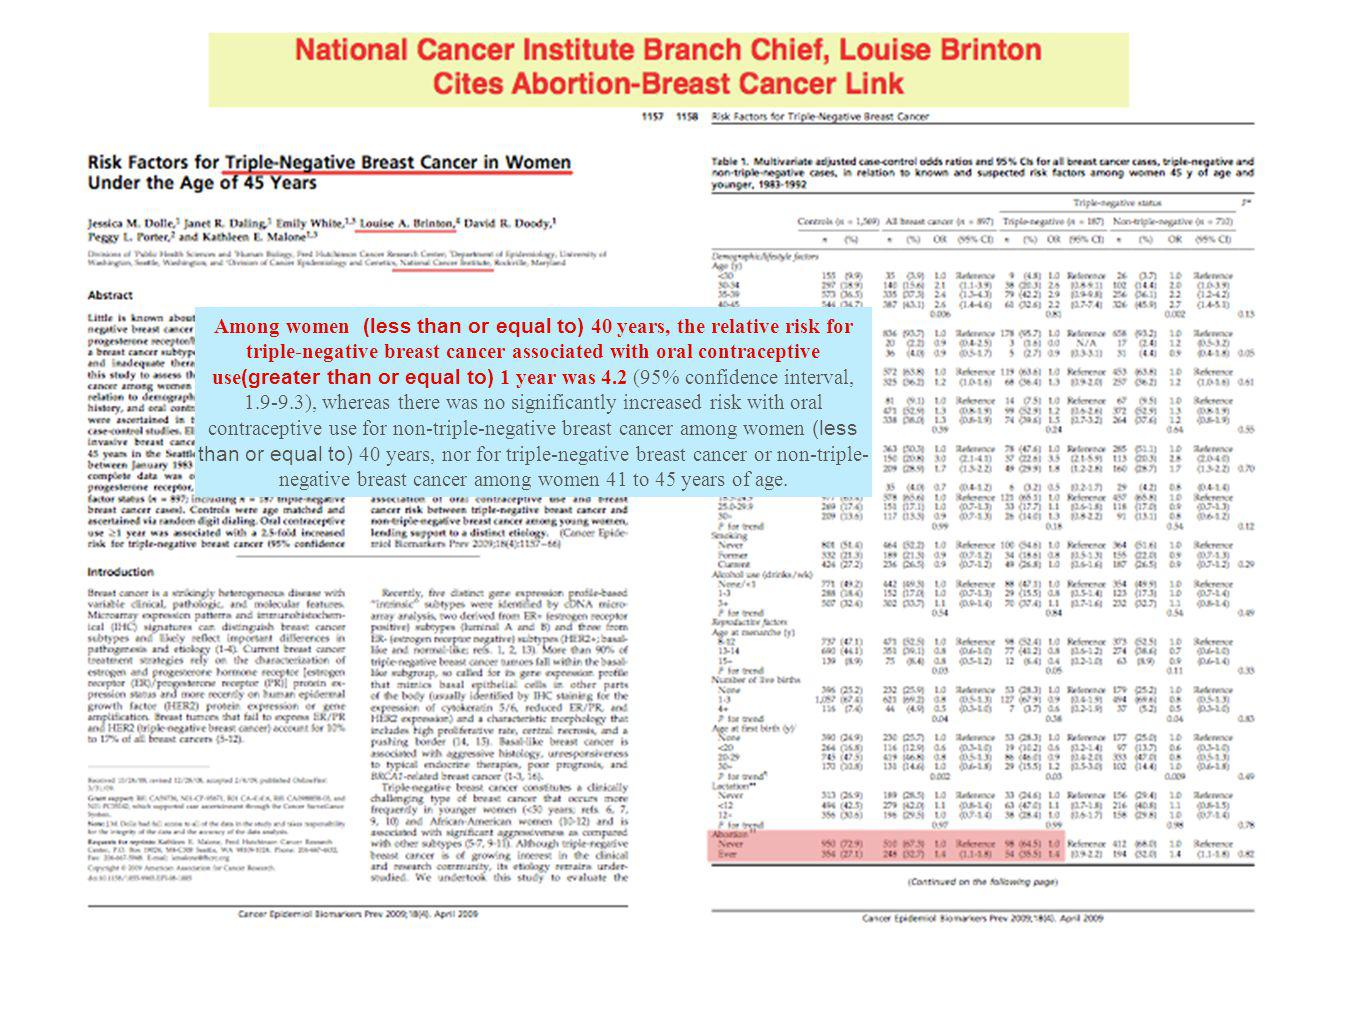 Among women (less than or equal to) 40 years, the relative risk for triple-negative breast cancer associated with oral contraceptive use(greater than or equal to) 1 year was 4.2 (95% confidence interval, 1.9-9.3), whereas there was no significantly increased risk with oral contraceptive use for non-triple-negative breast cancer among women (less than or equal to) 40 years, nor for triple-negative breast cancer or non-triple-negative breast cancer among women 41 to 45 years of age.